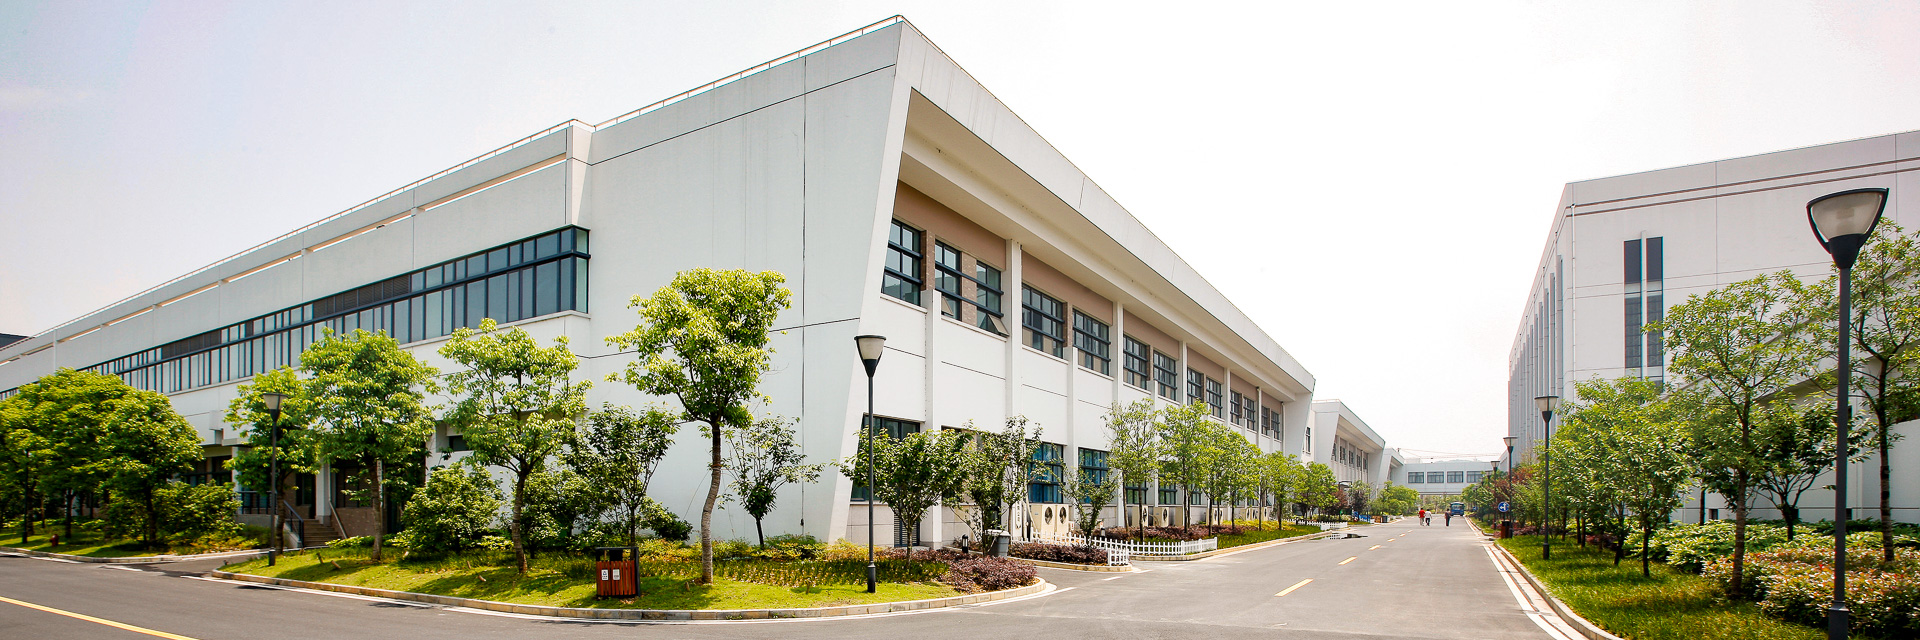 Holley Campus - Hangzhou, China